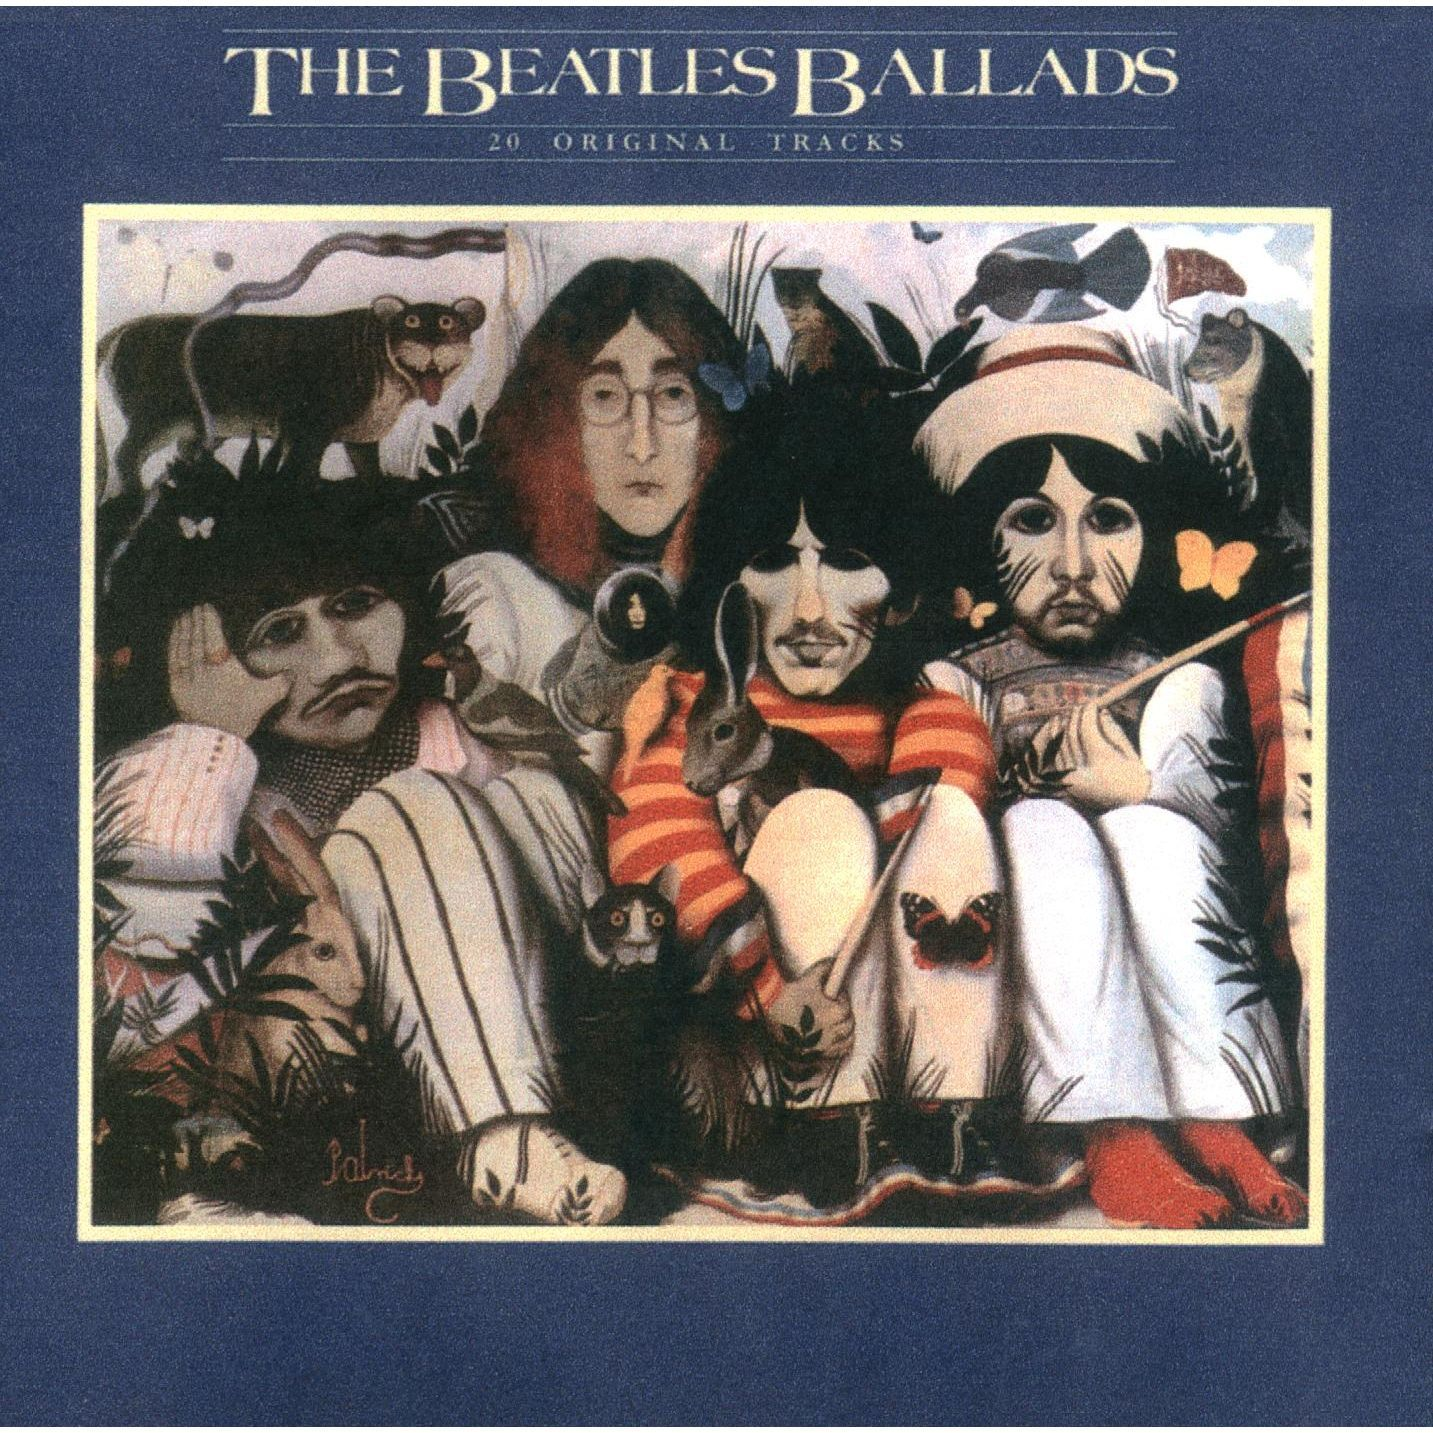 All Beatles Album Covers The Beatles Ballads The